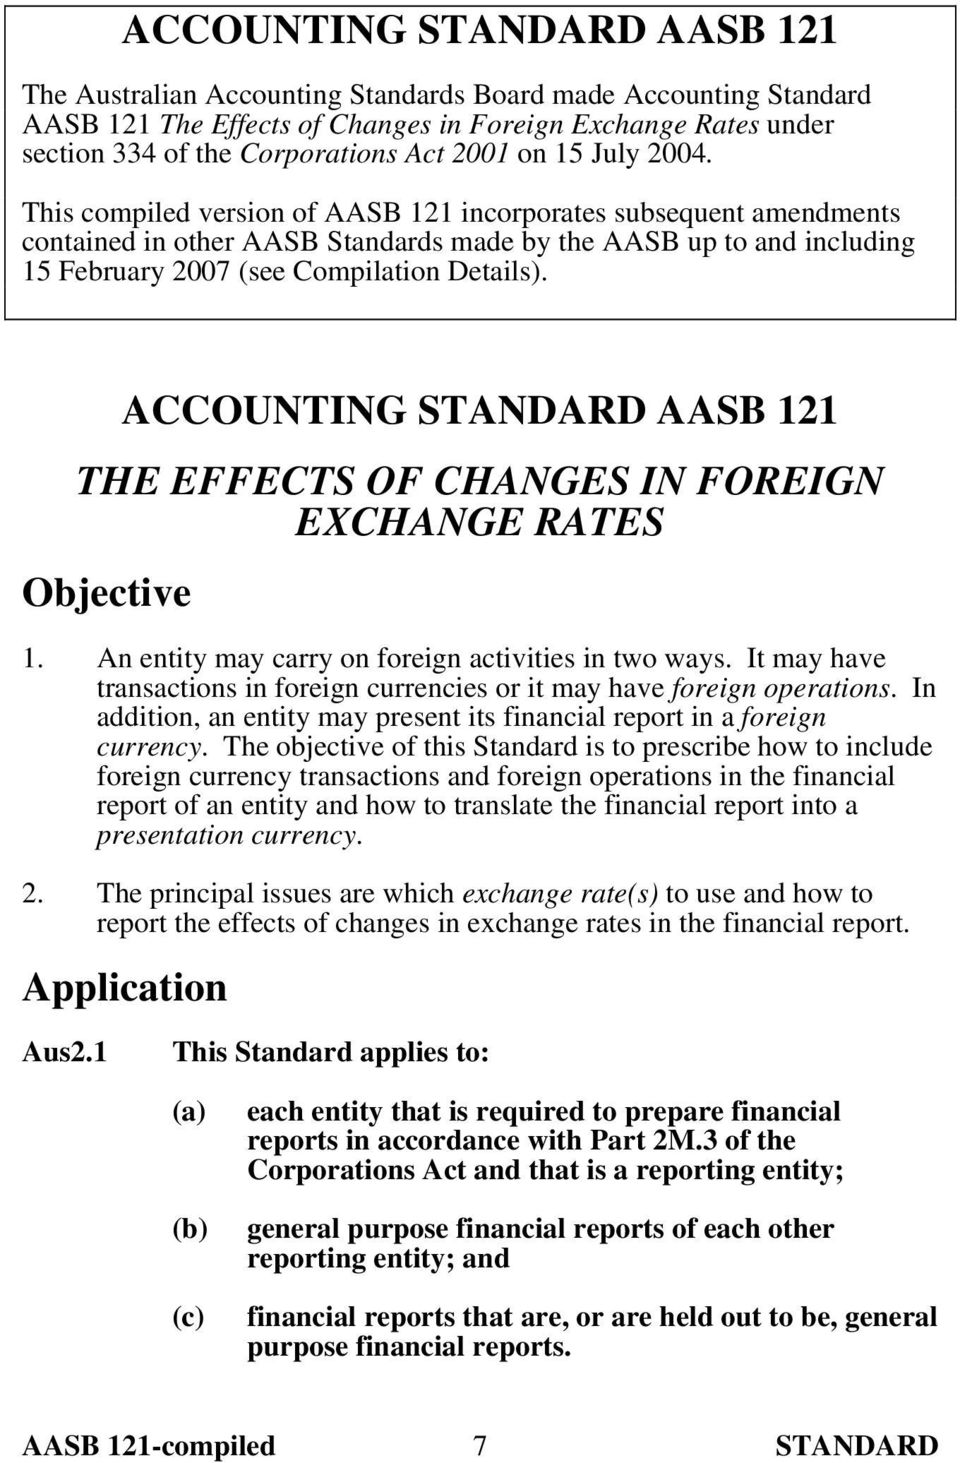 This compiled version of AASB 121 incorporates subsequent amendments contained in other AASB Standards made by the AASB up to and including 15 February 2007 (see Compilation Details).